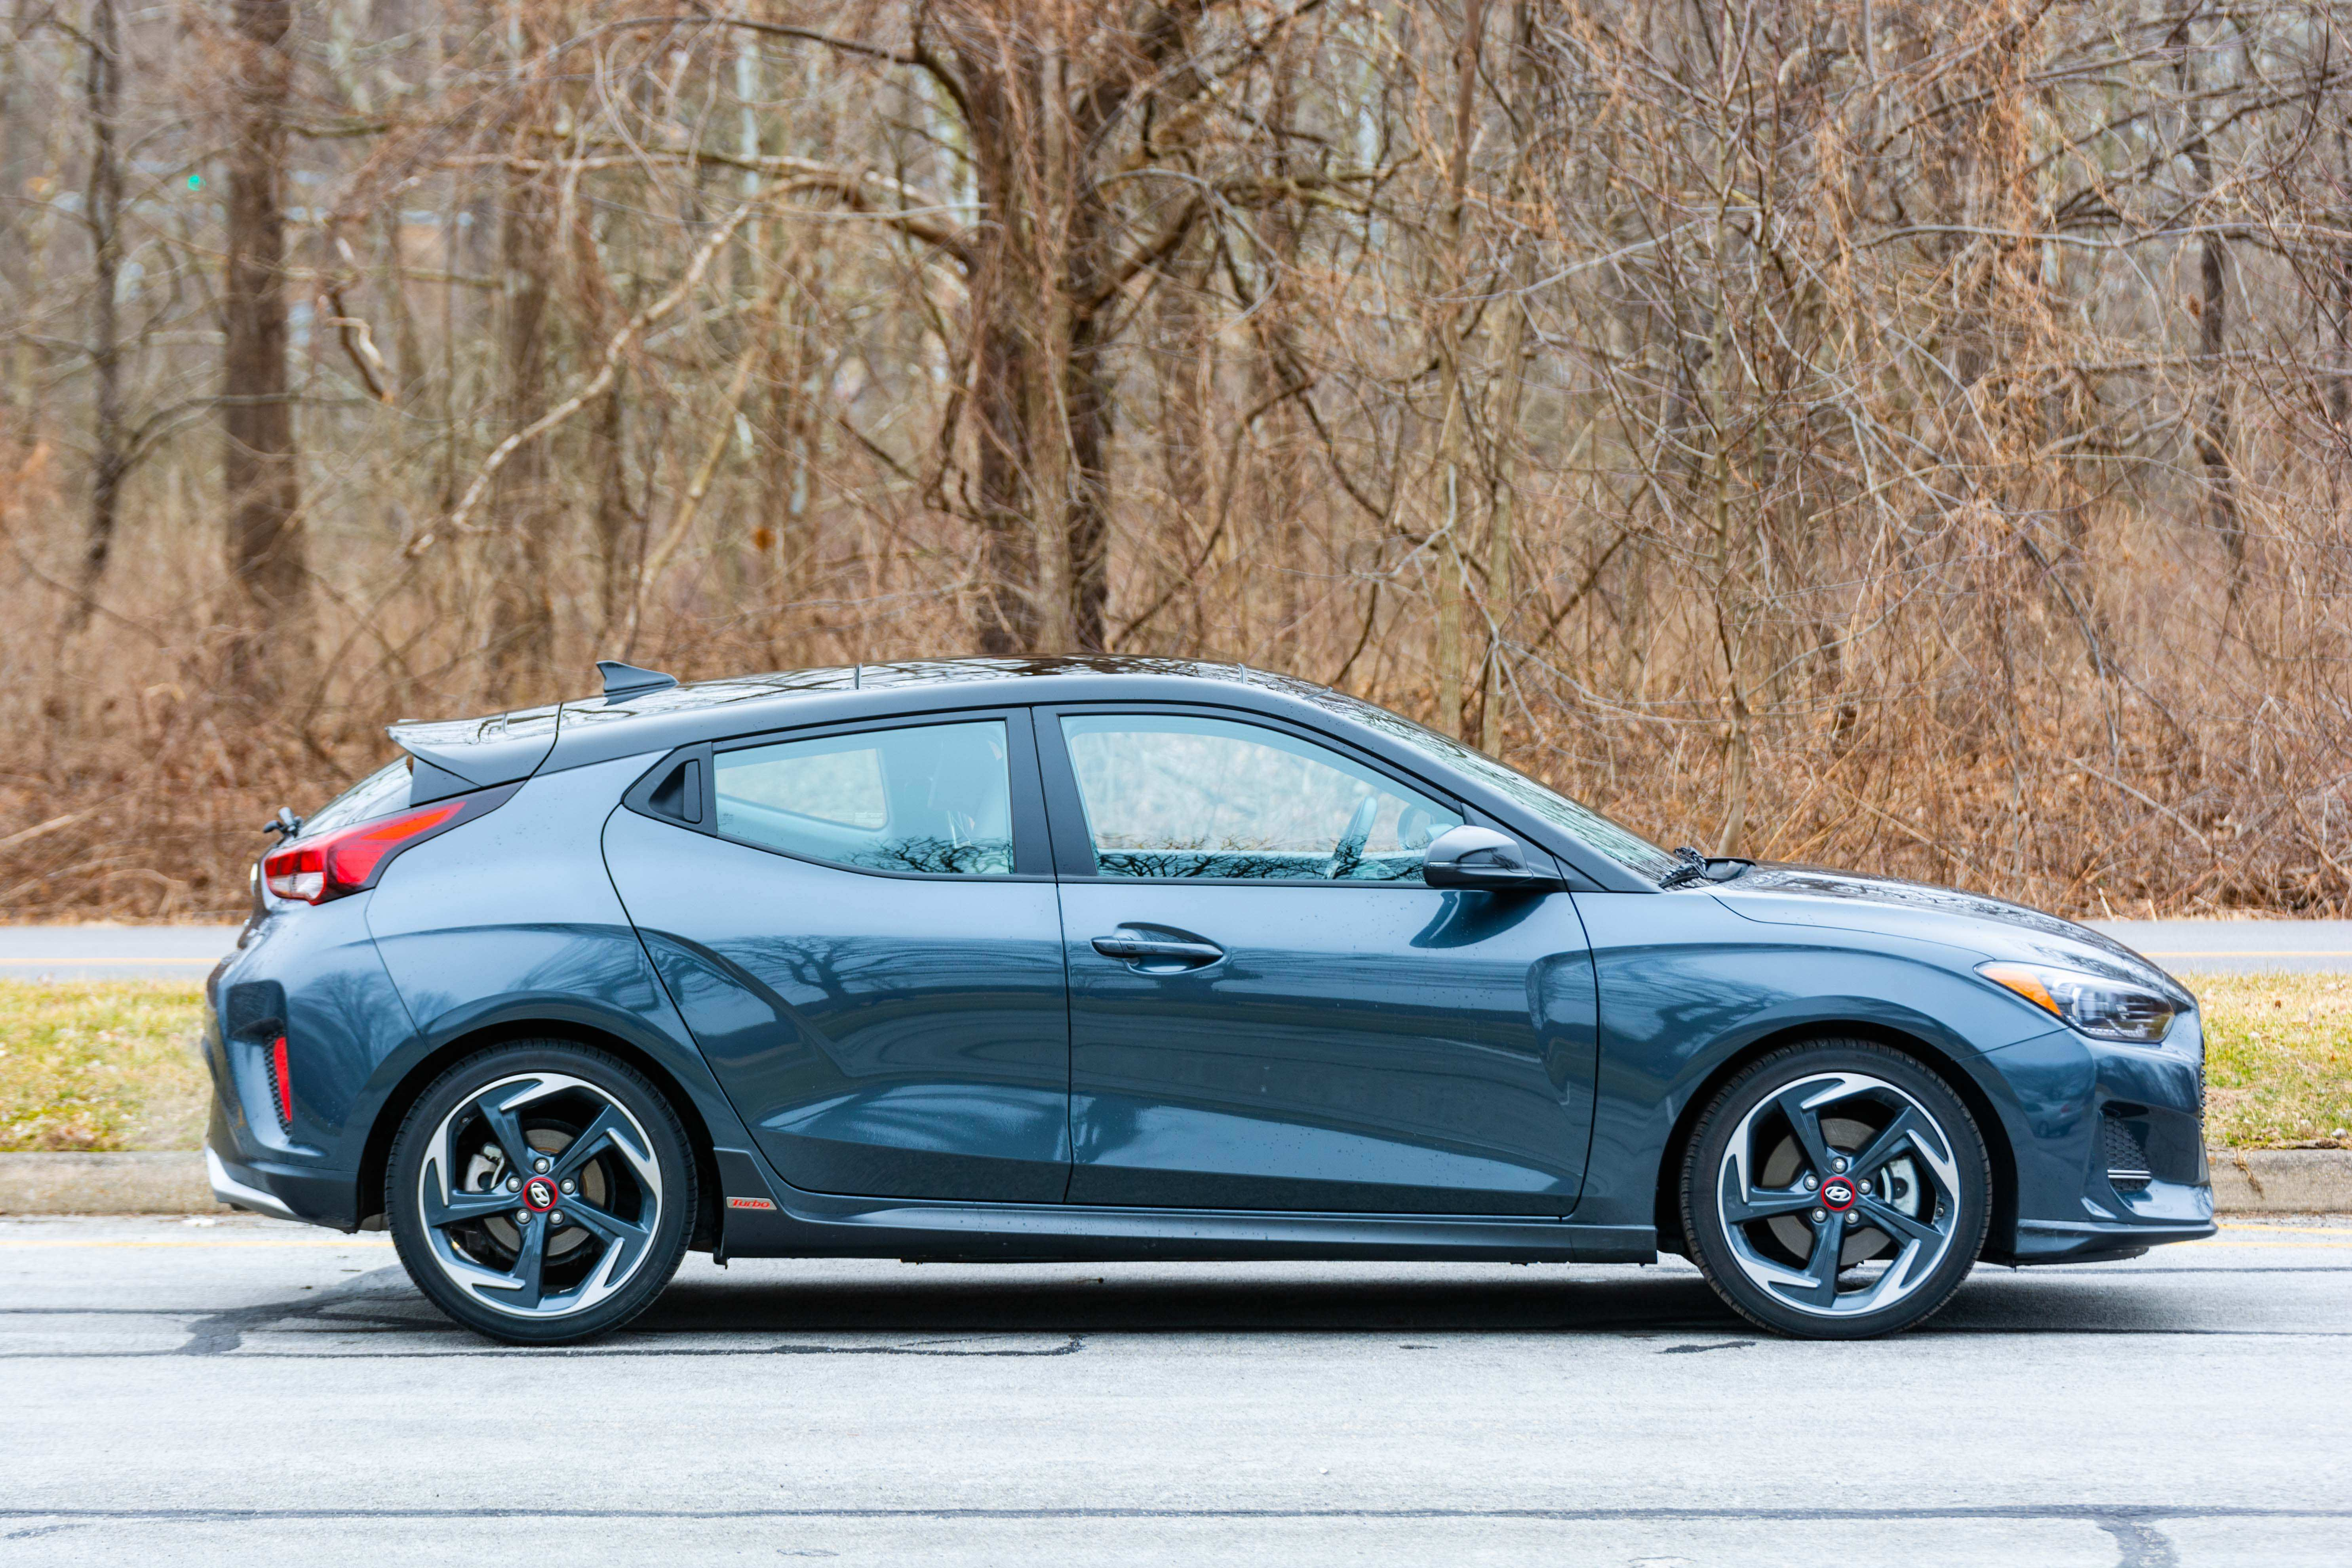 51 New 2019 Hyundai Veloster Turbo Concept